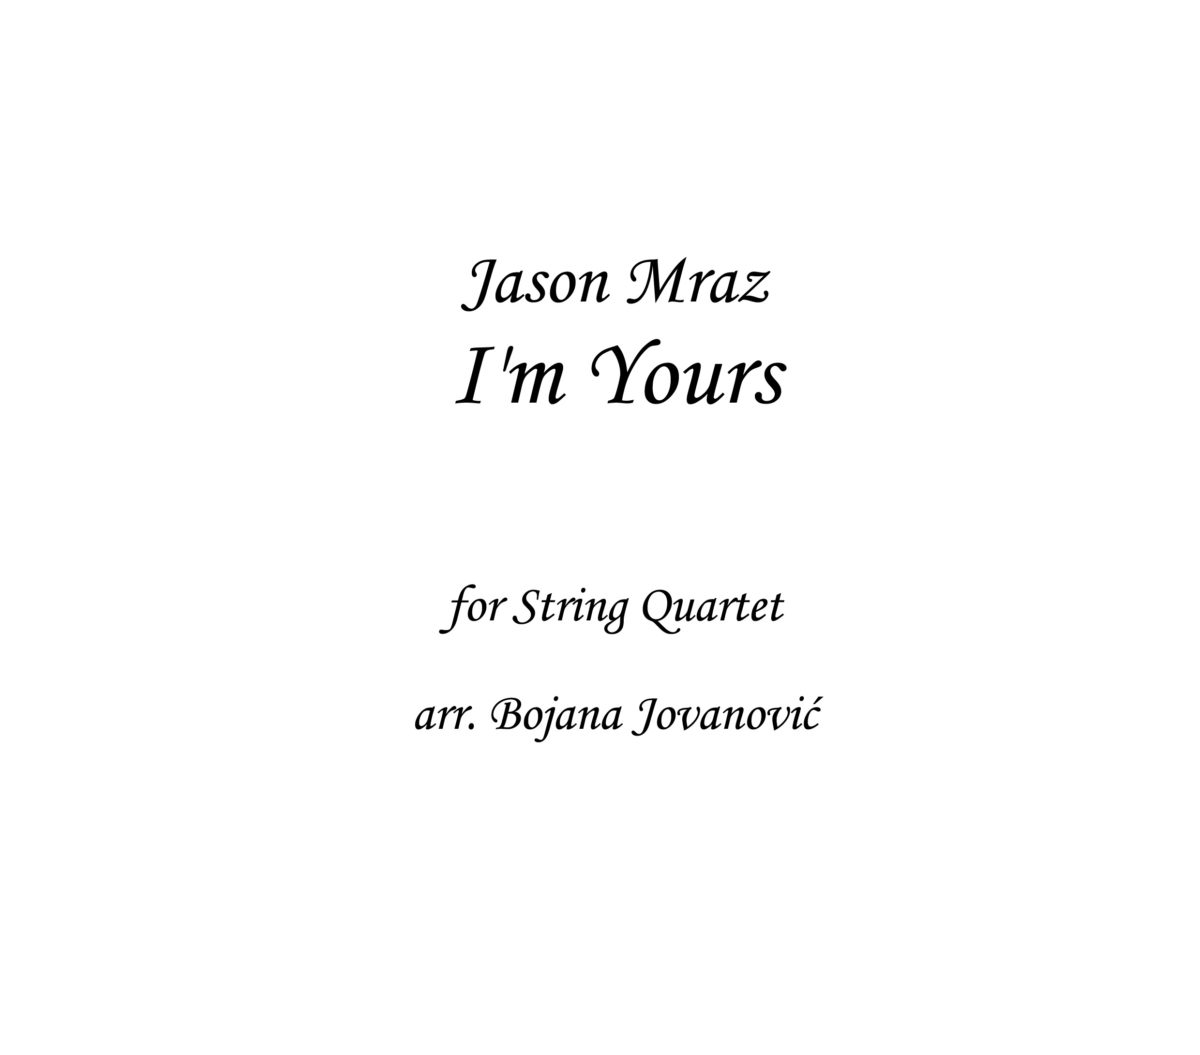 I'm Yours Jason Mraz Sheet music